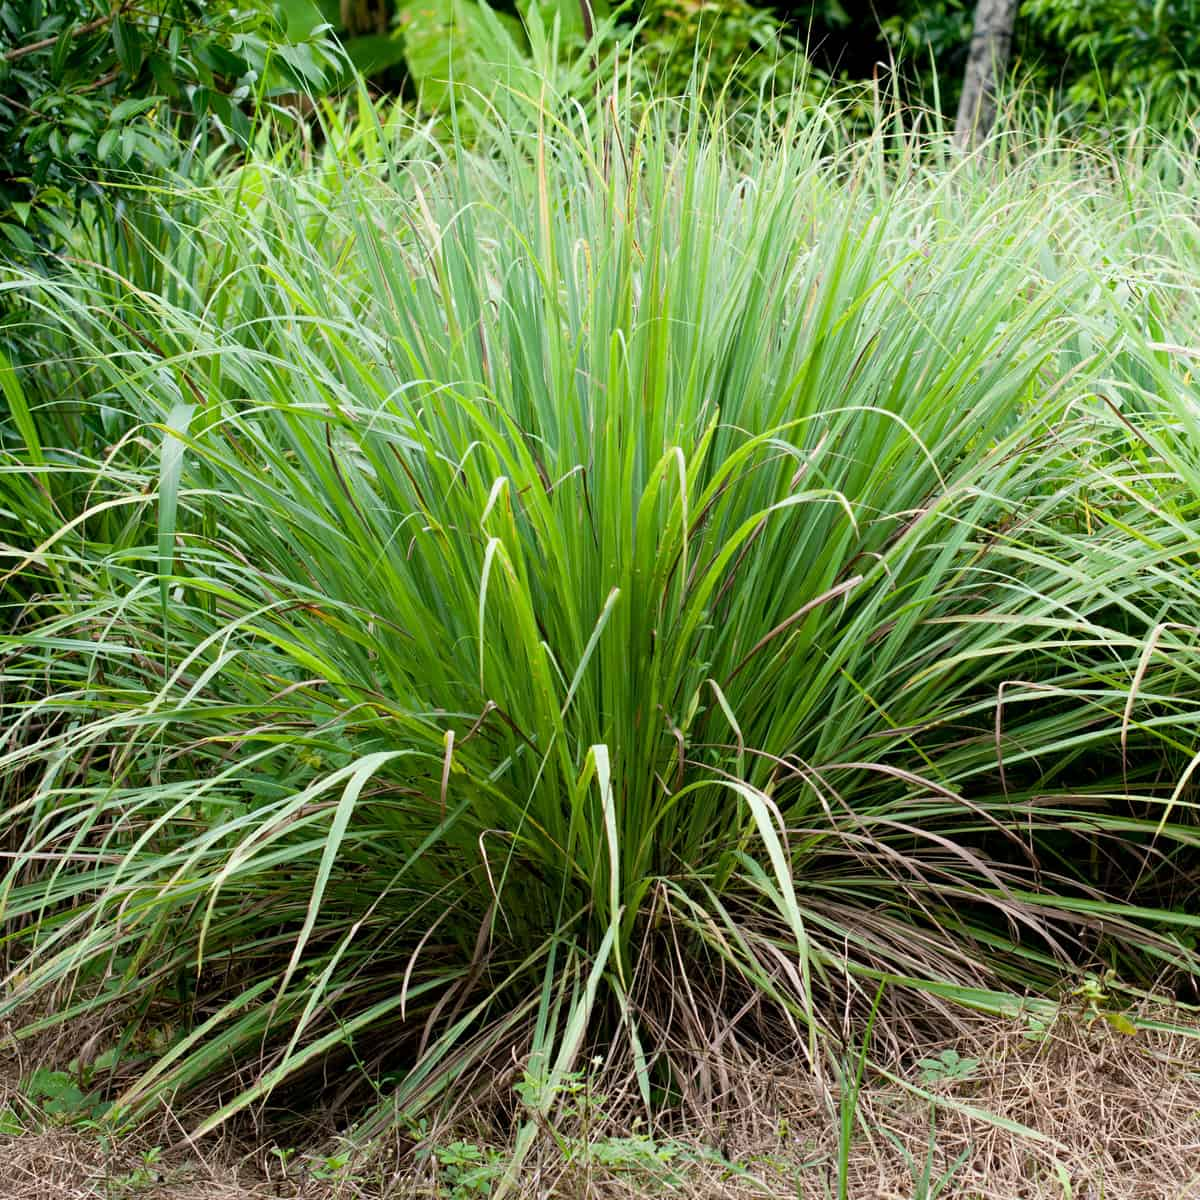 citronella grass is a great mosquito repellent